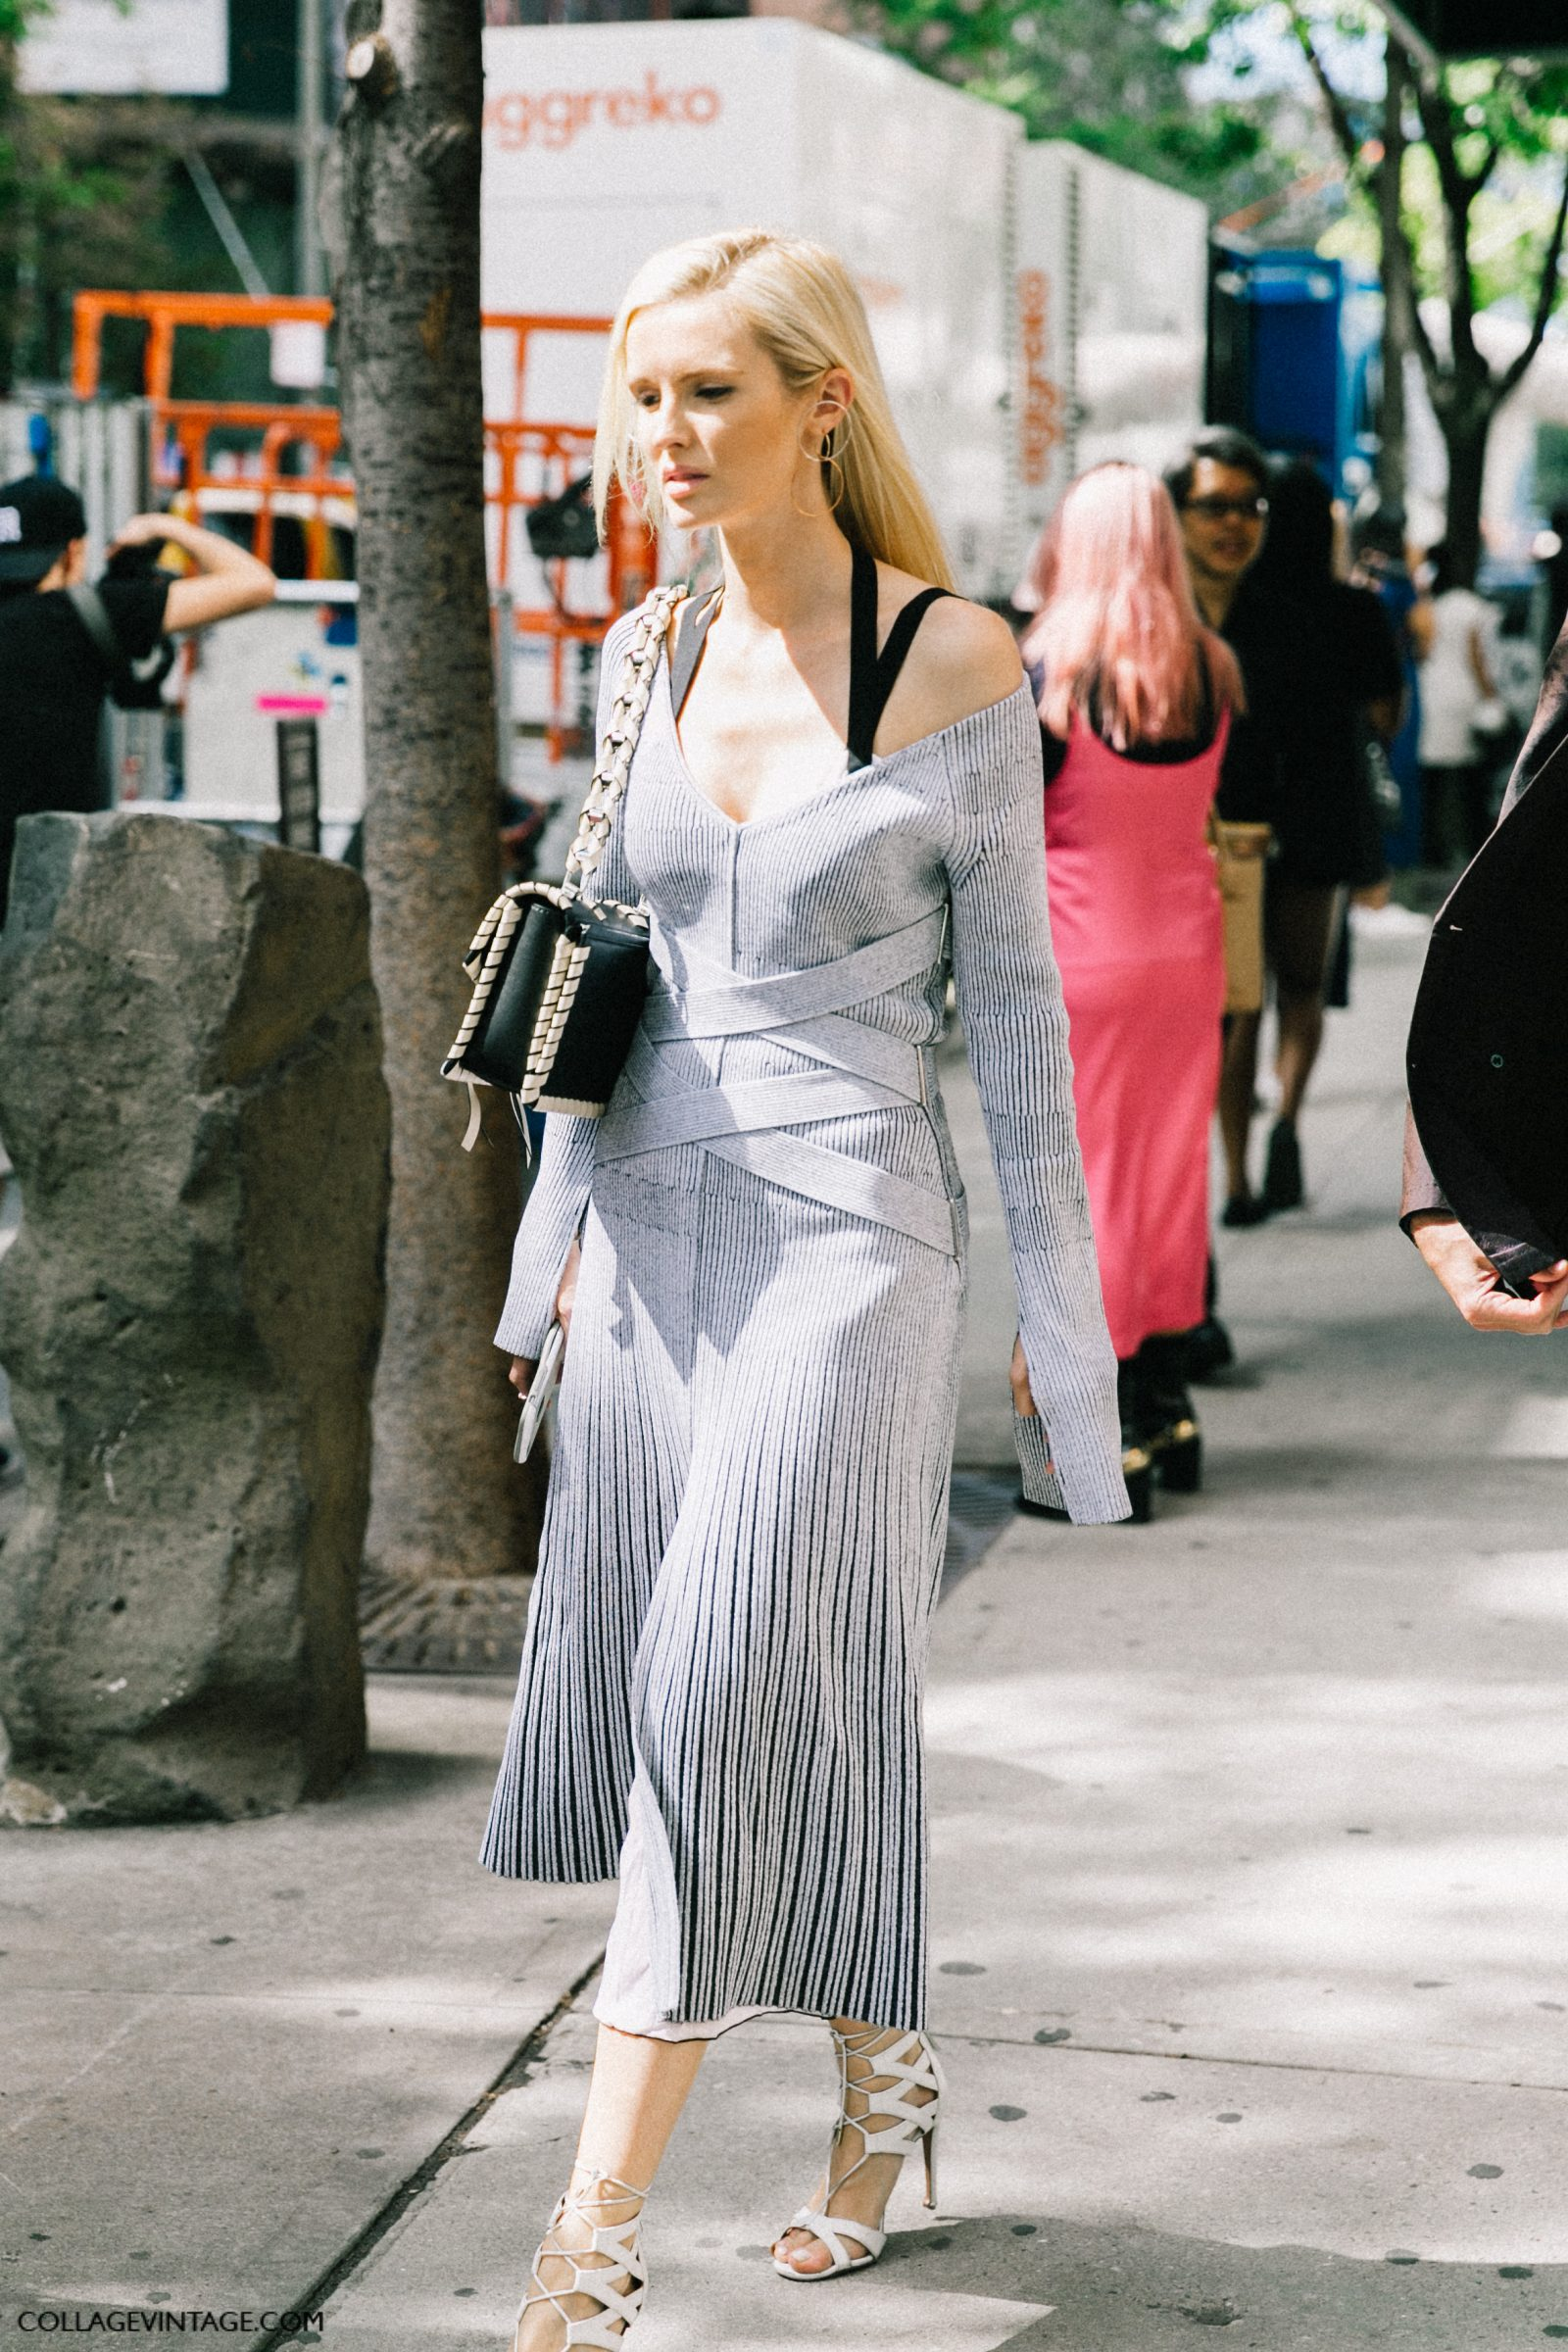 nyfw-new_york_fashion_week_ss17-street_style-outfits-collage_vintage-vintage-phillip_lim-the-row-proenza_schouler-rossie_aussolin-258